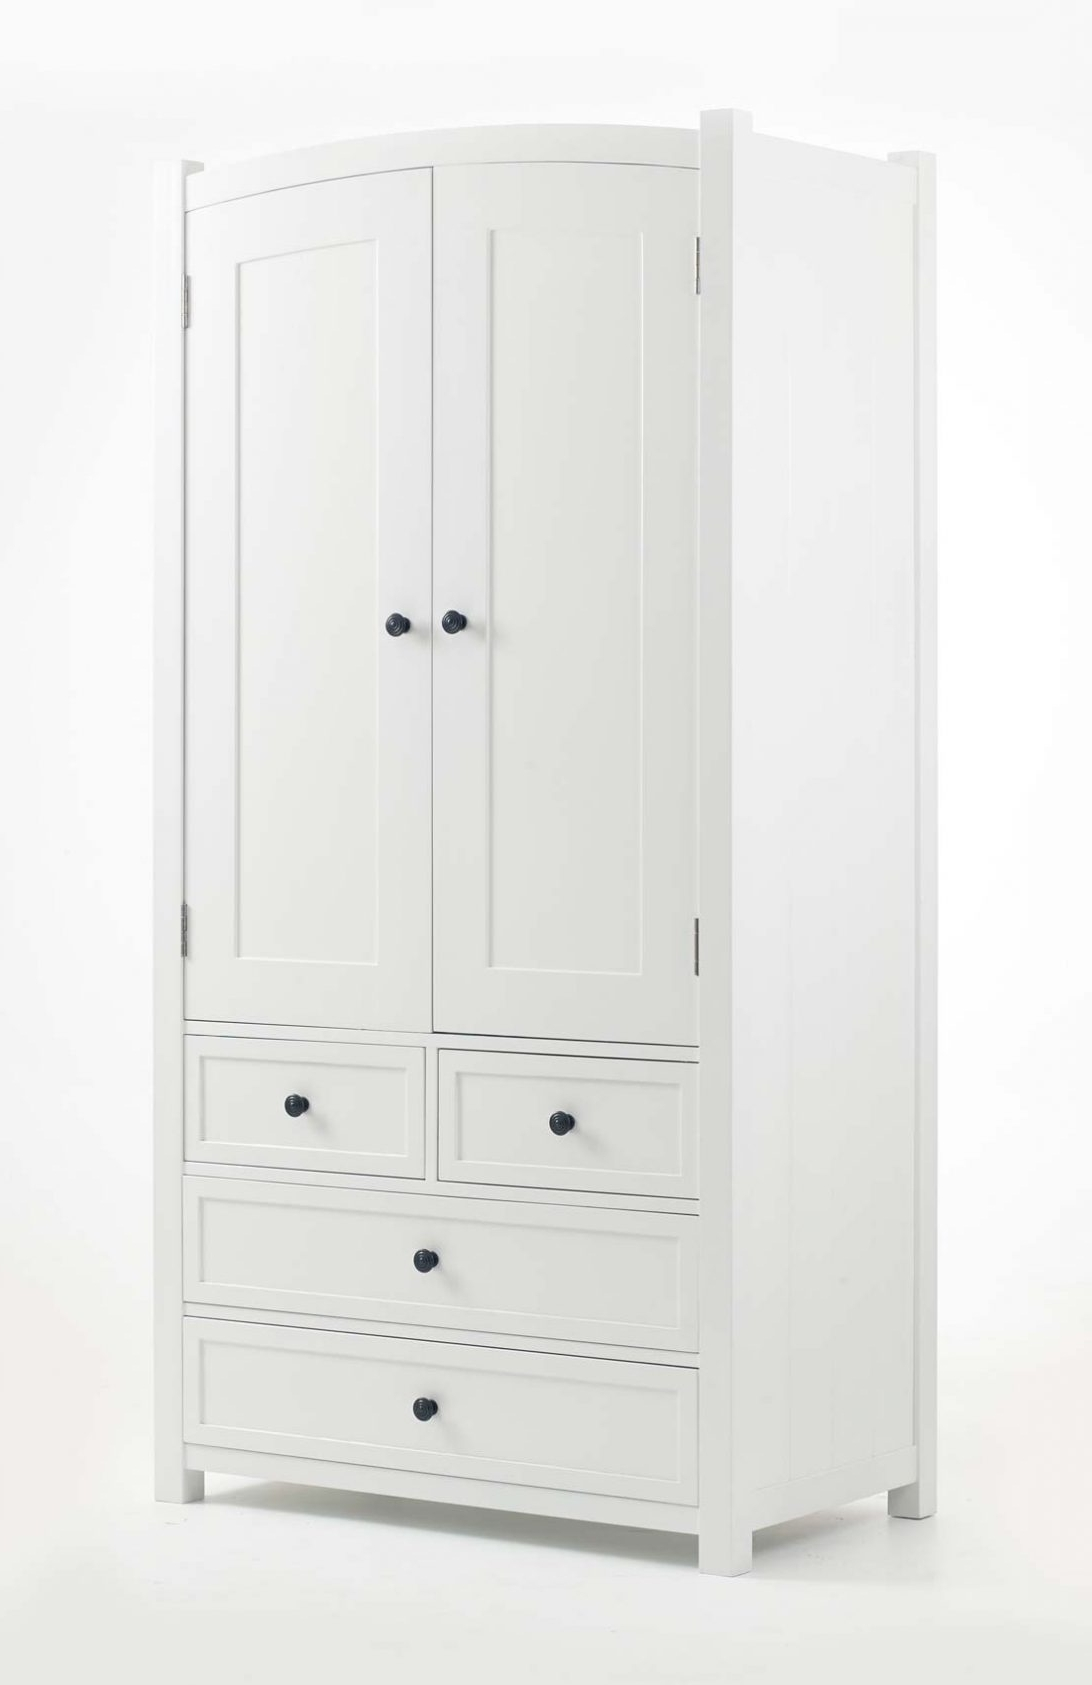 White Wardrobe With Drawers And Shelves Sliding Door Wood In Fashionable Double Wardrobes With Drawers And Shelves (View 15 of 15)